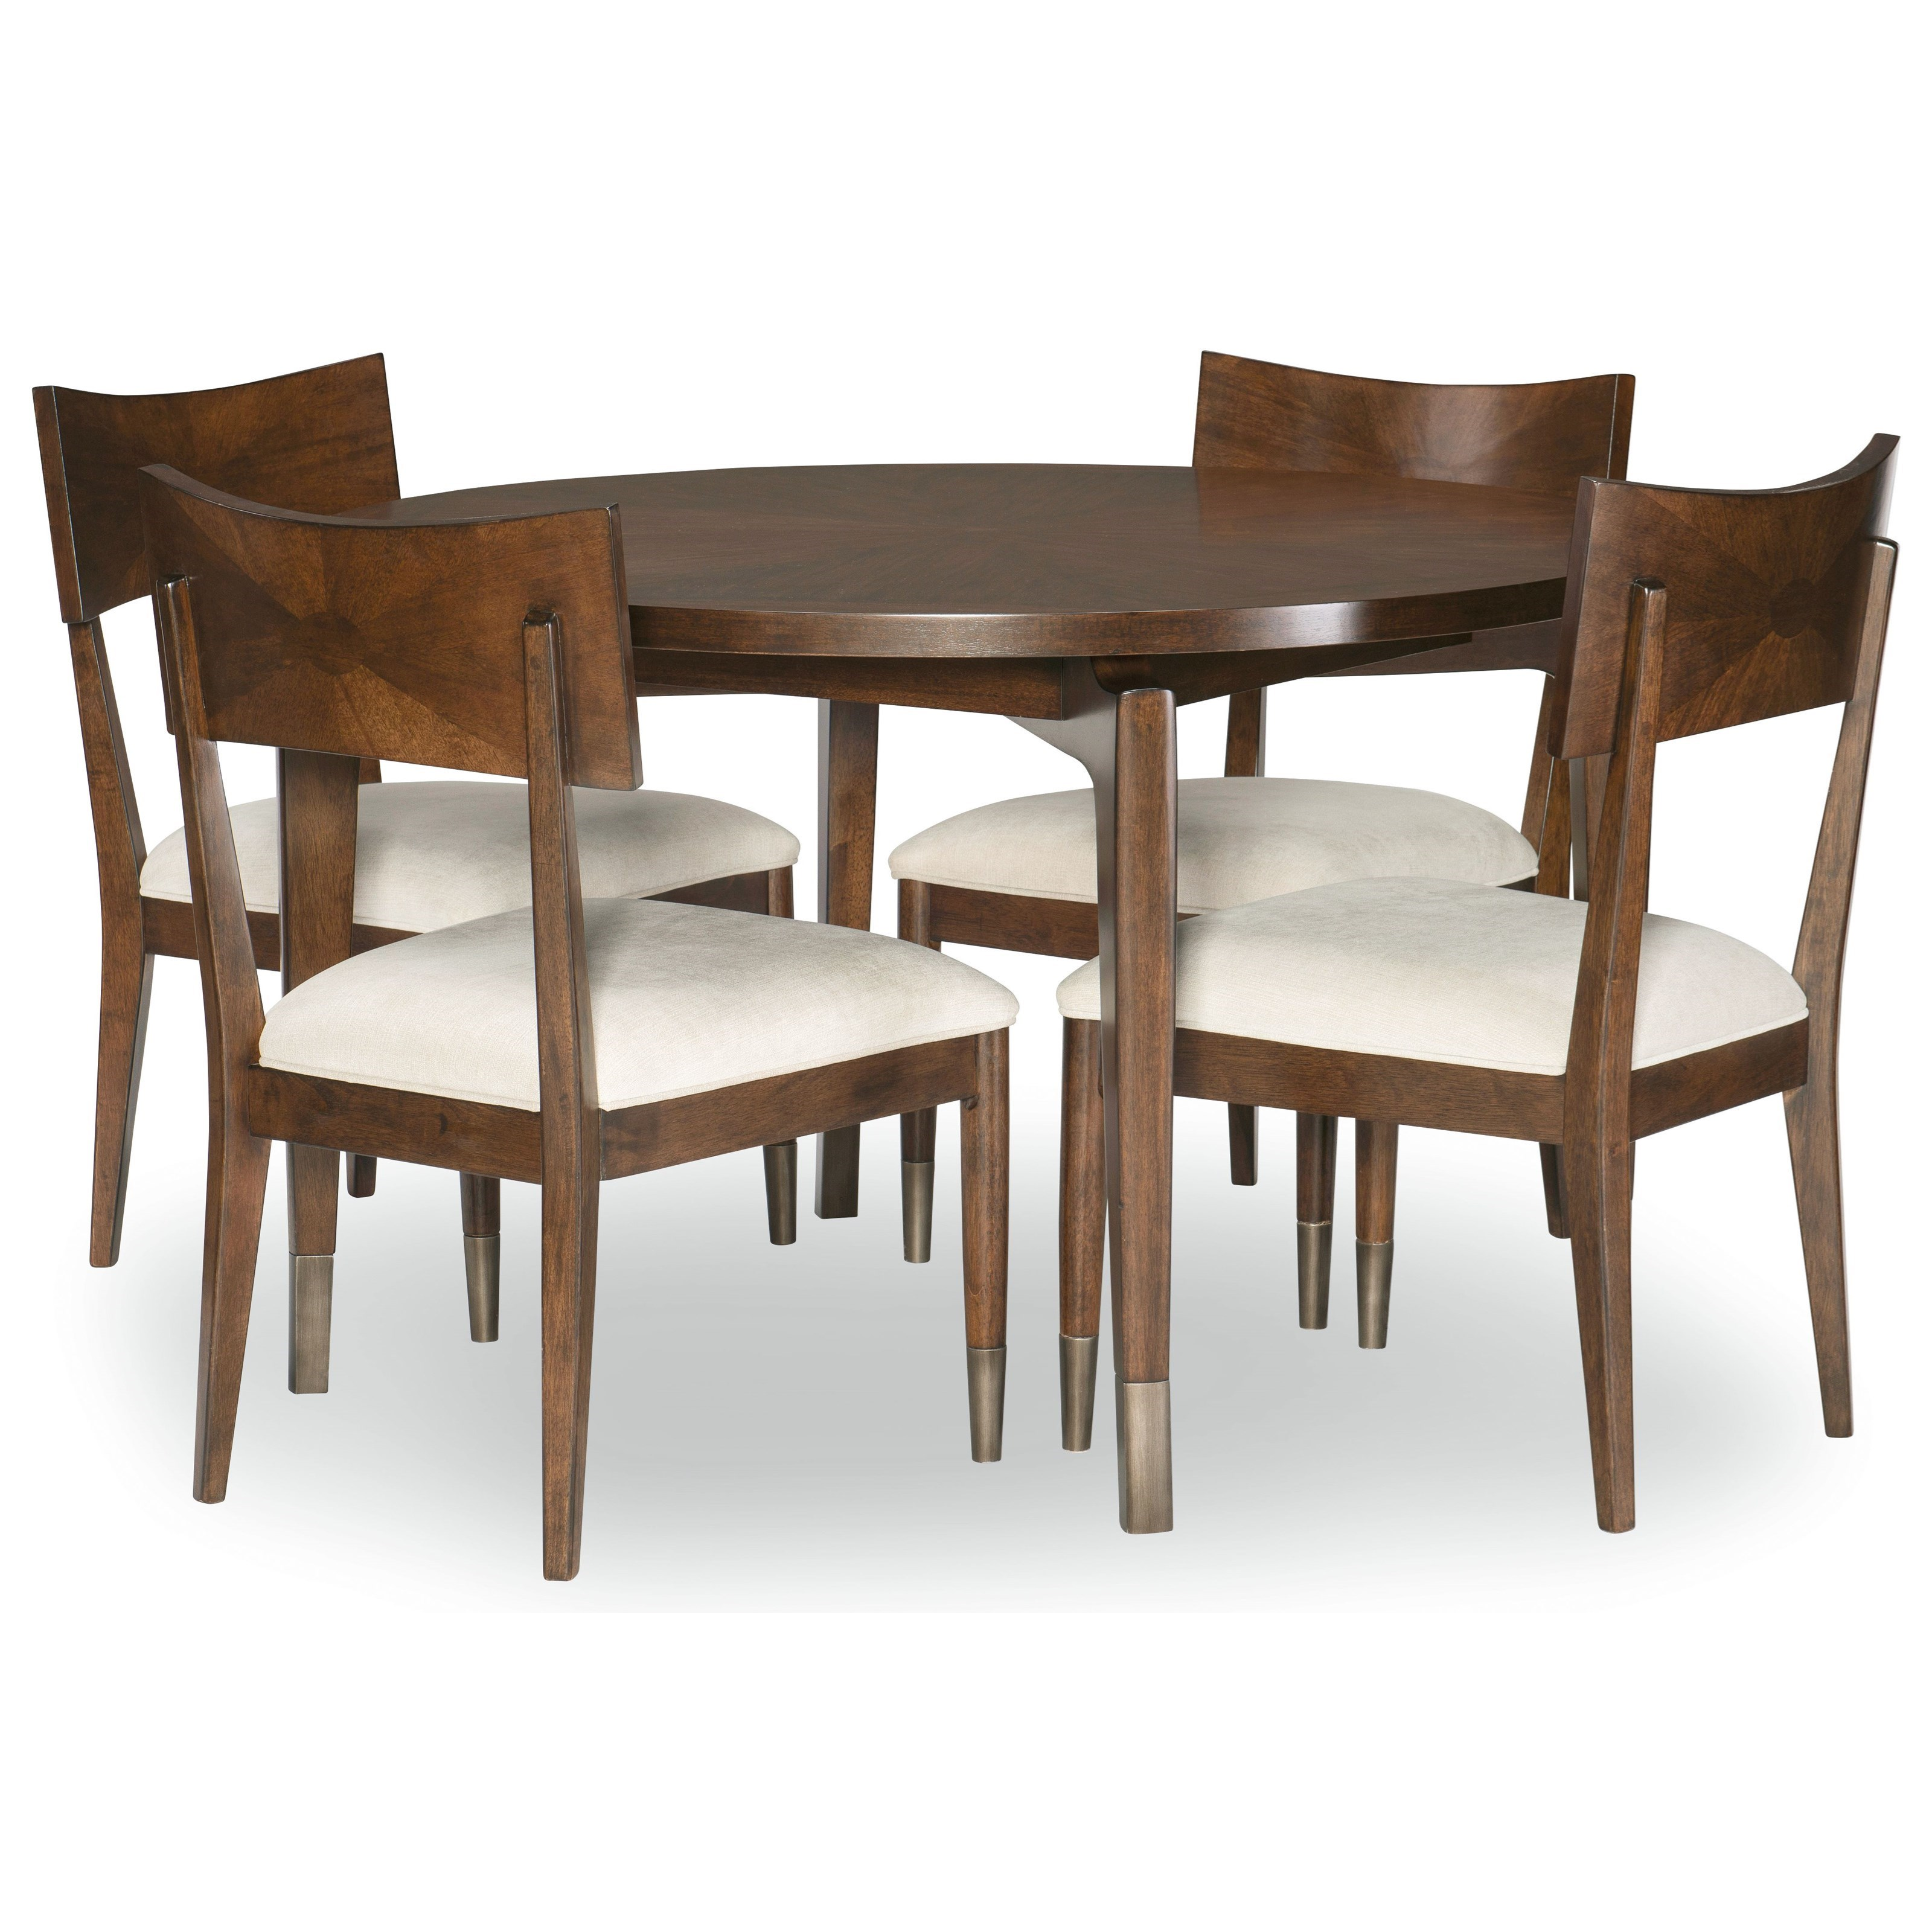 Savoy 5-Piece Table and Chair Set at Virginia Furniture Market